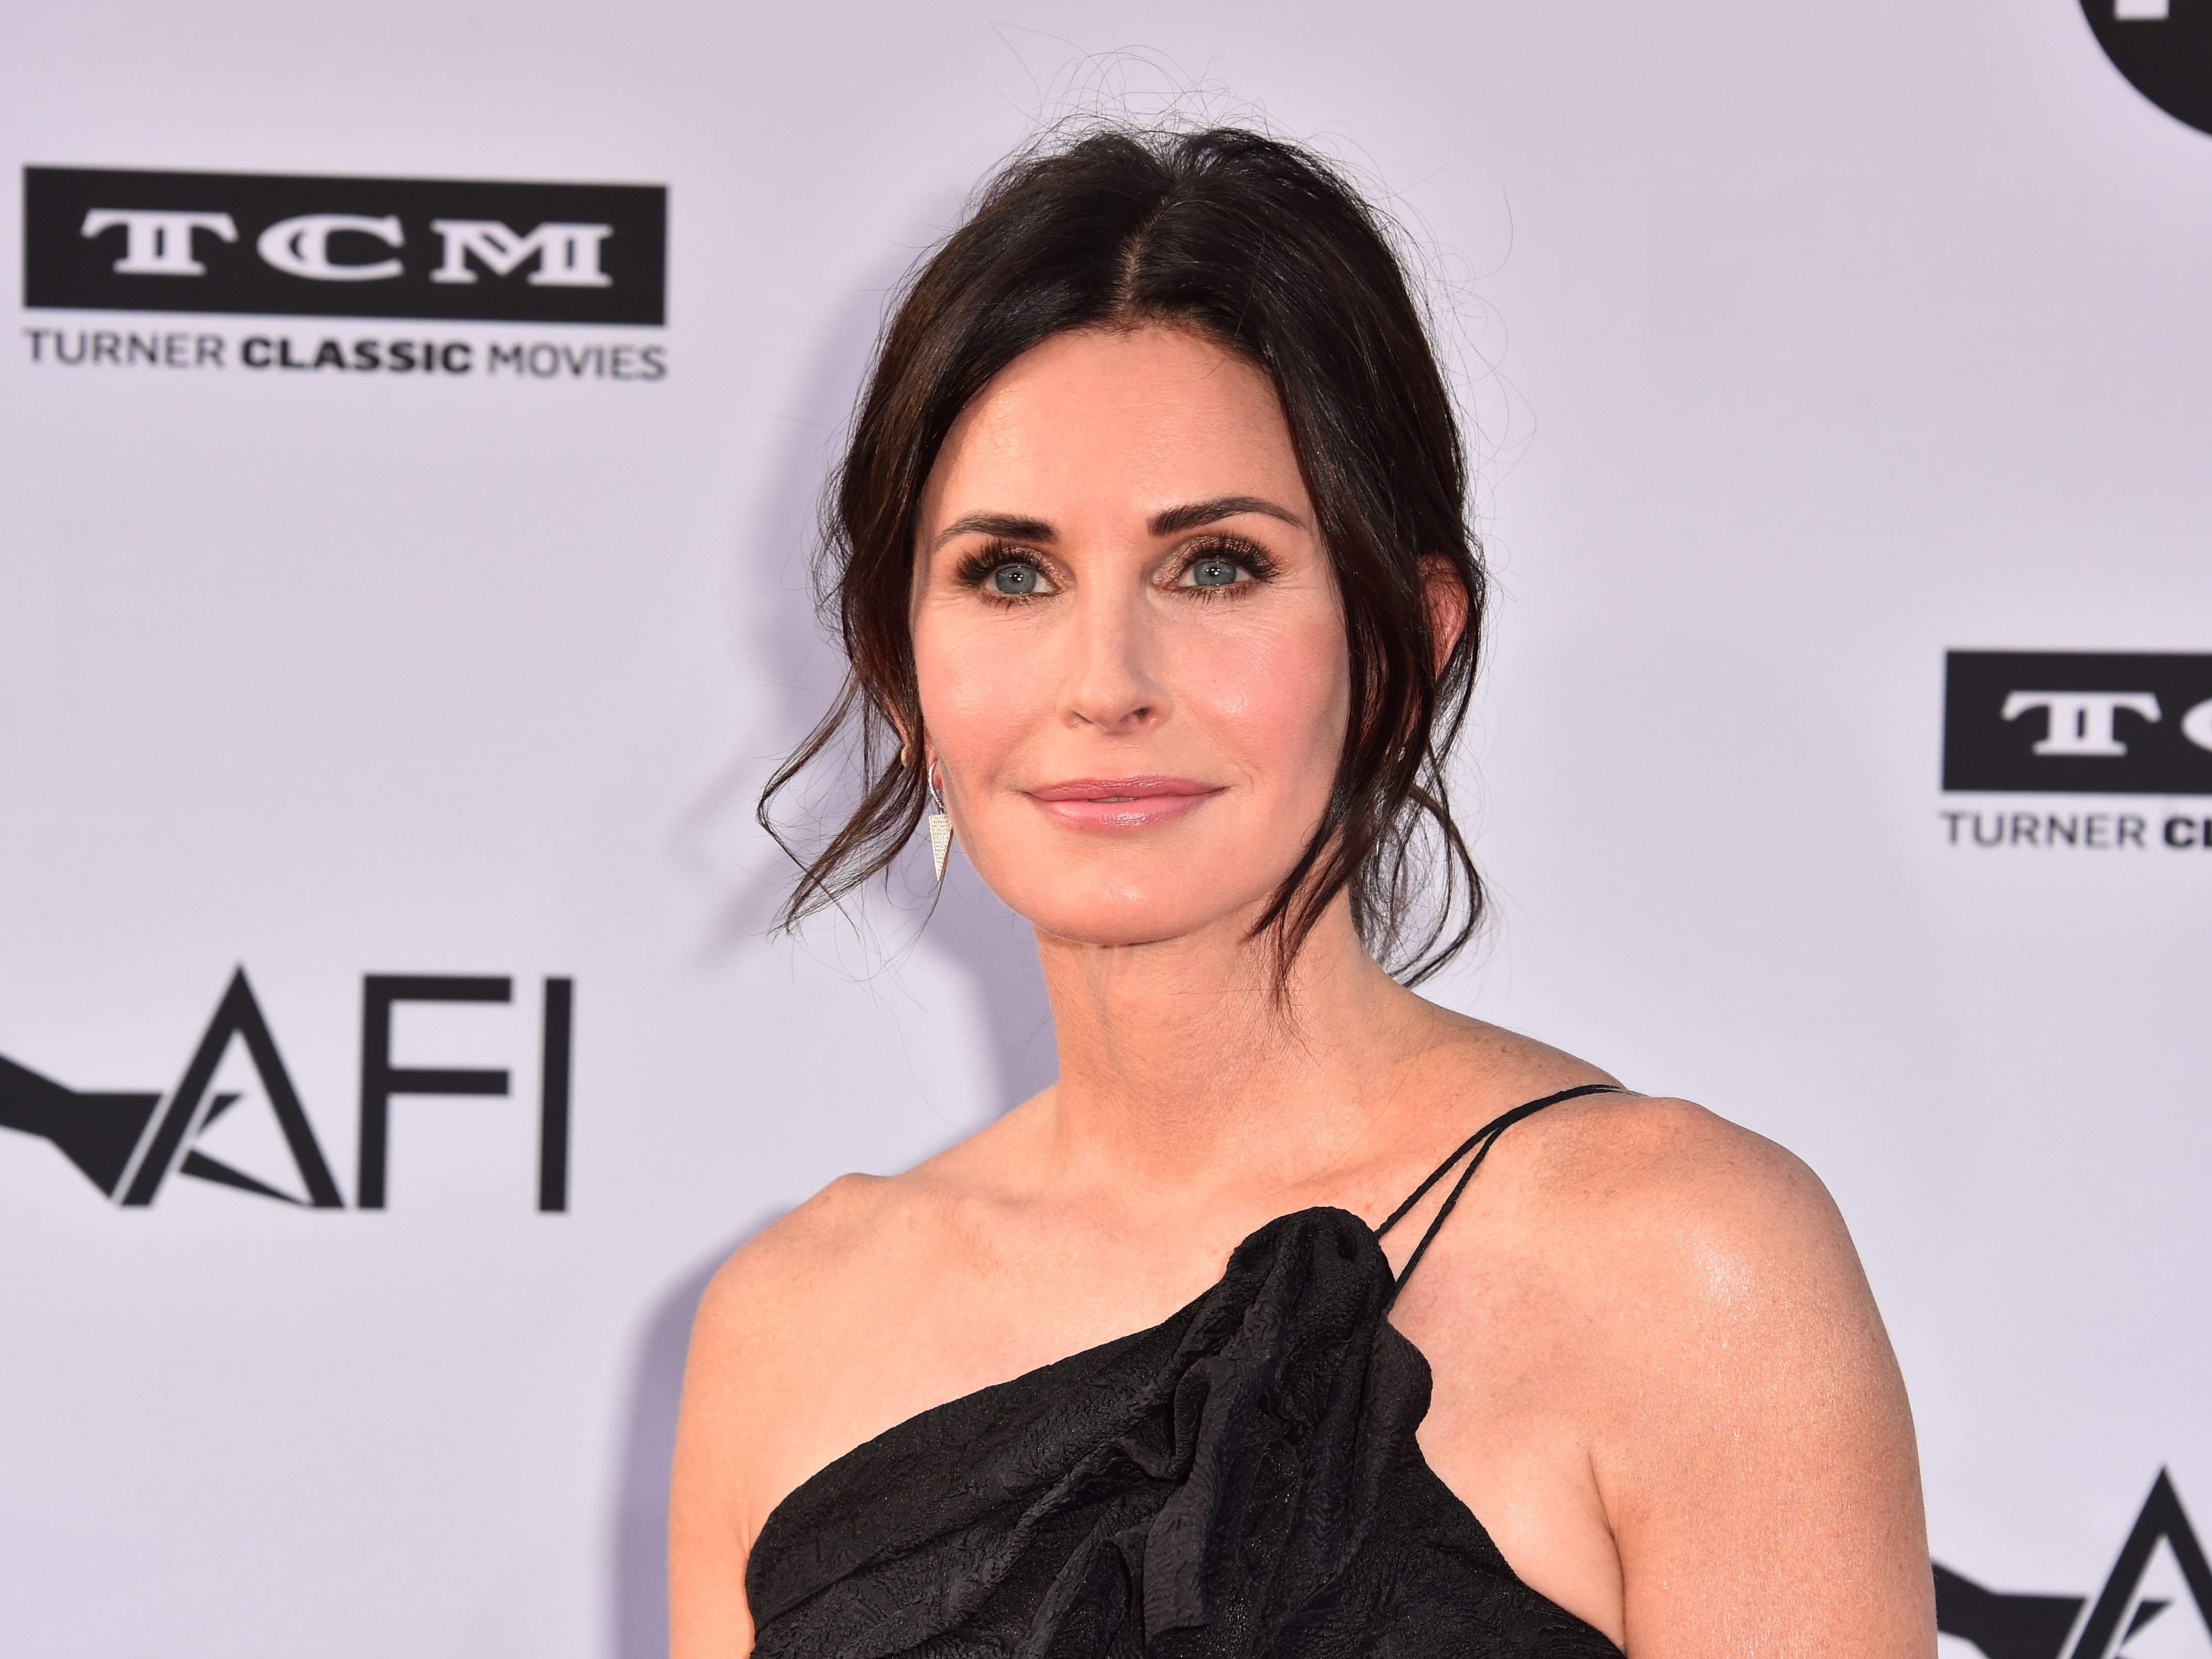 Courteney Cox at the American Film Institute's 46th Life Achievement Award Gala in 2018 | Source: Getty Images